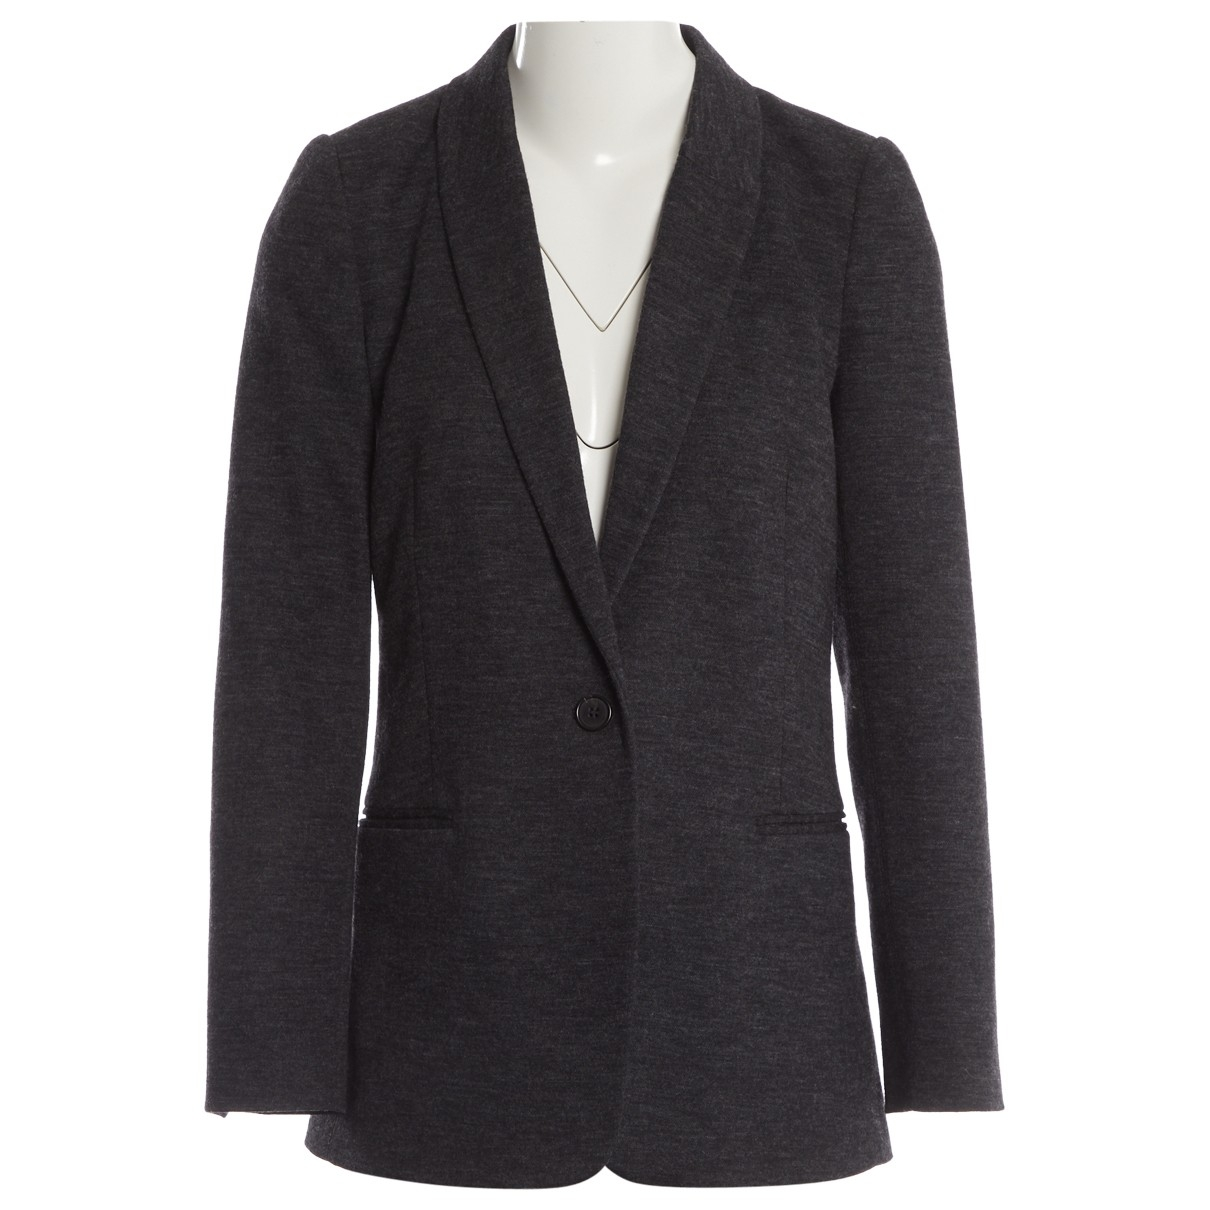 By Malene Birger \N Anthracite Wool jacket for Women 34 EU